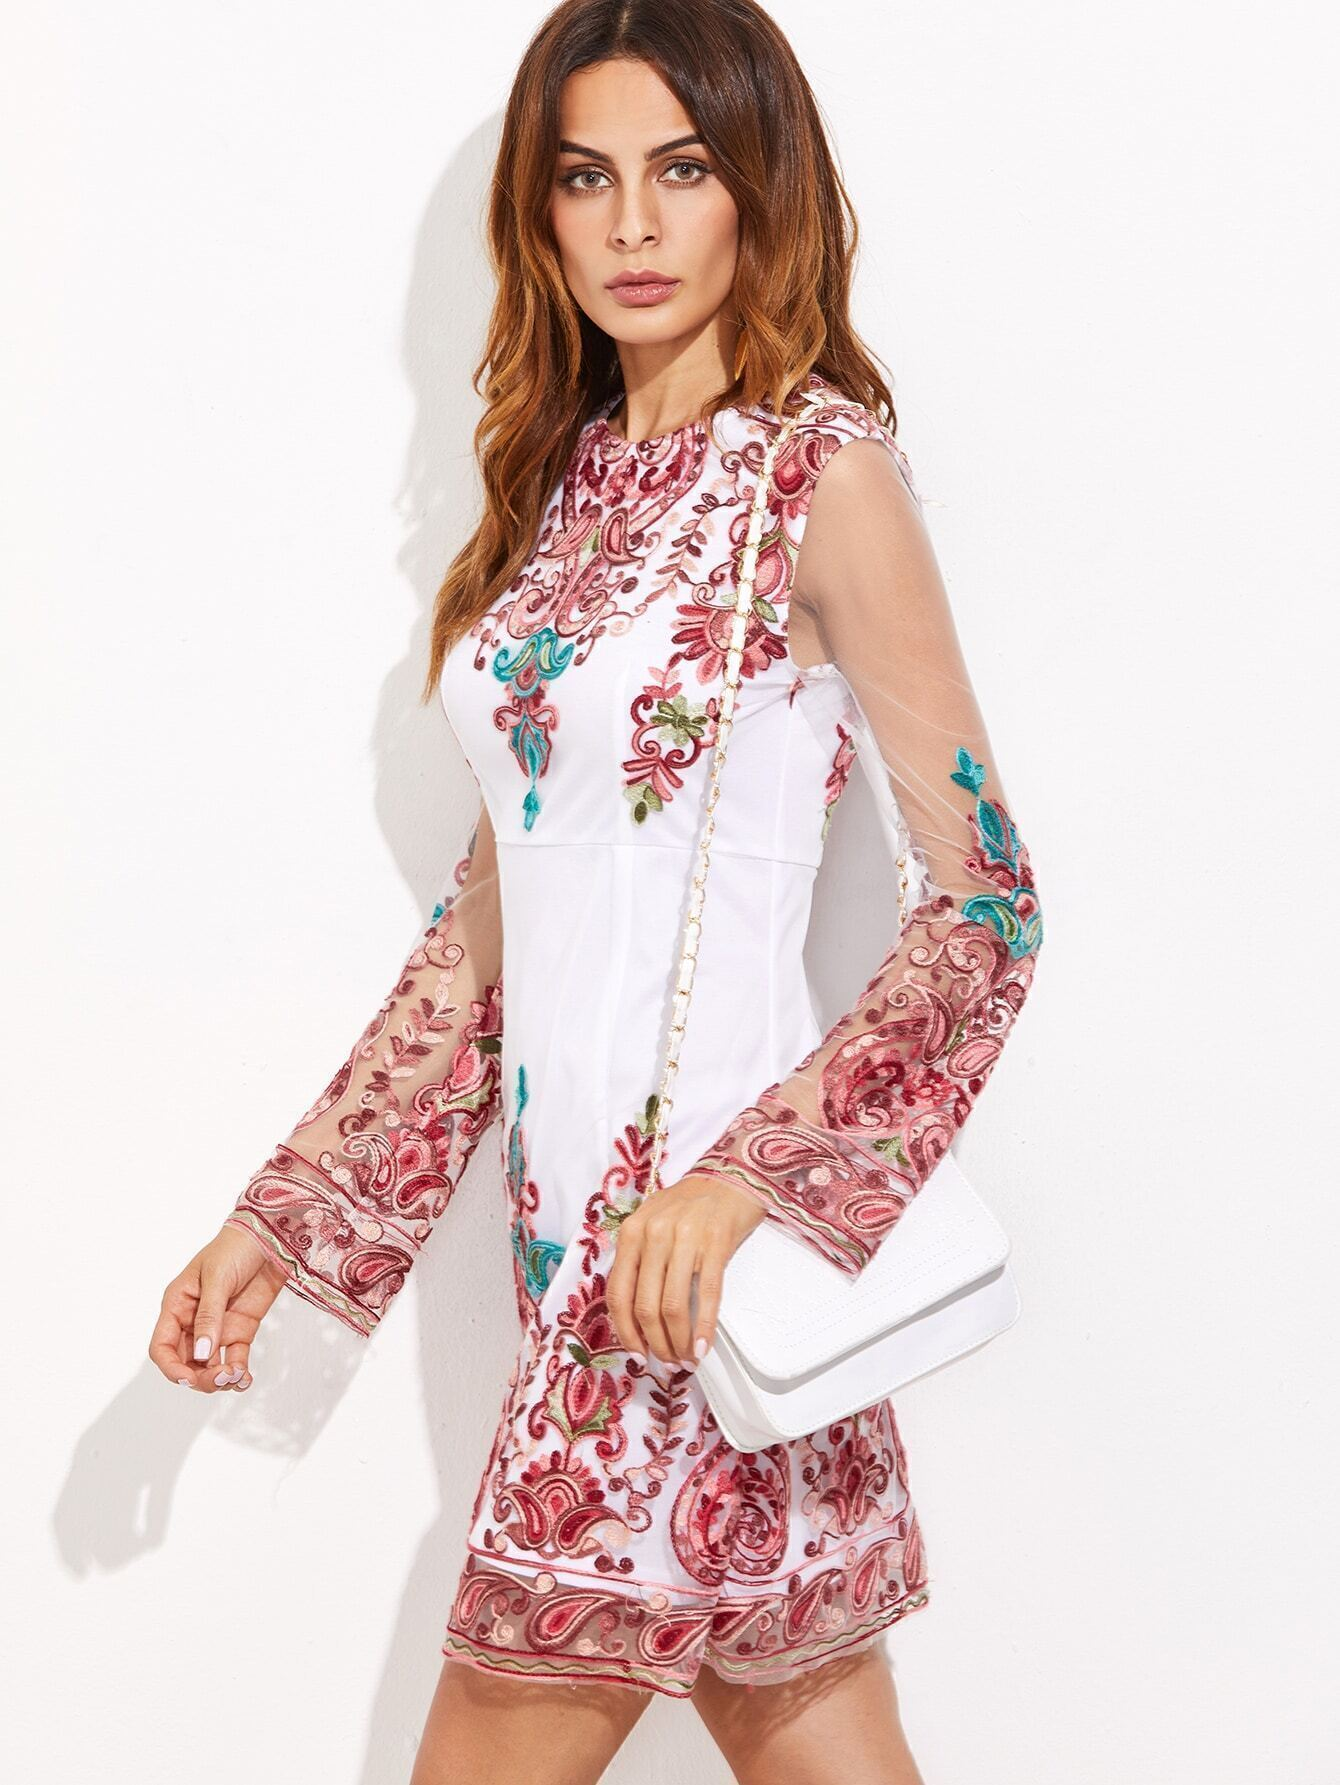 bd8b49c7c3 White Sheer Sleeve Embroidered Mesh Overlay Dress EmmaCloth-Women Fast  Fashion Online